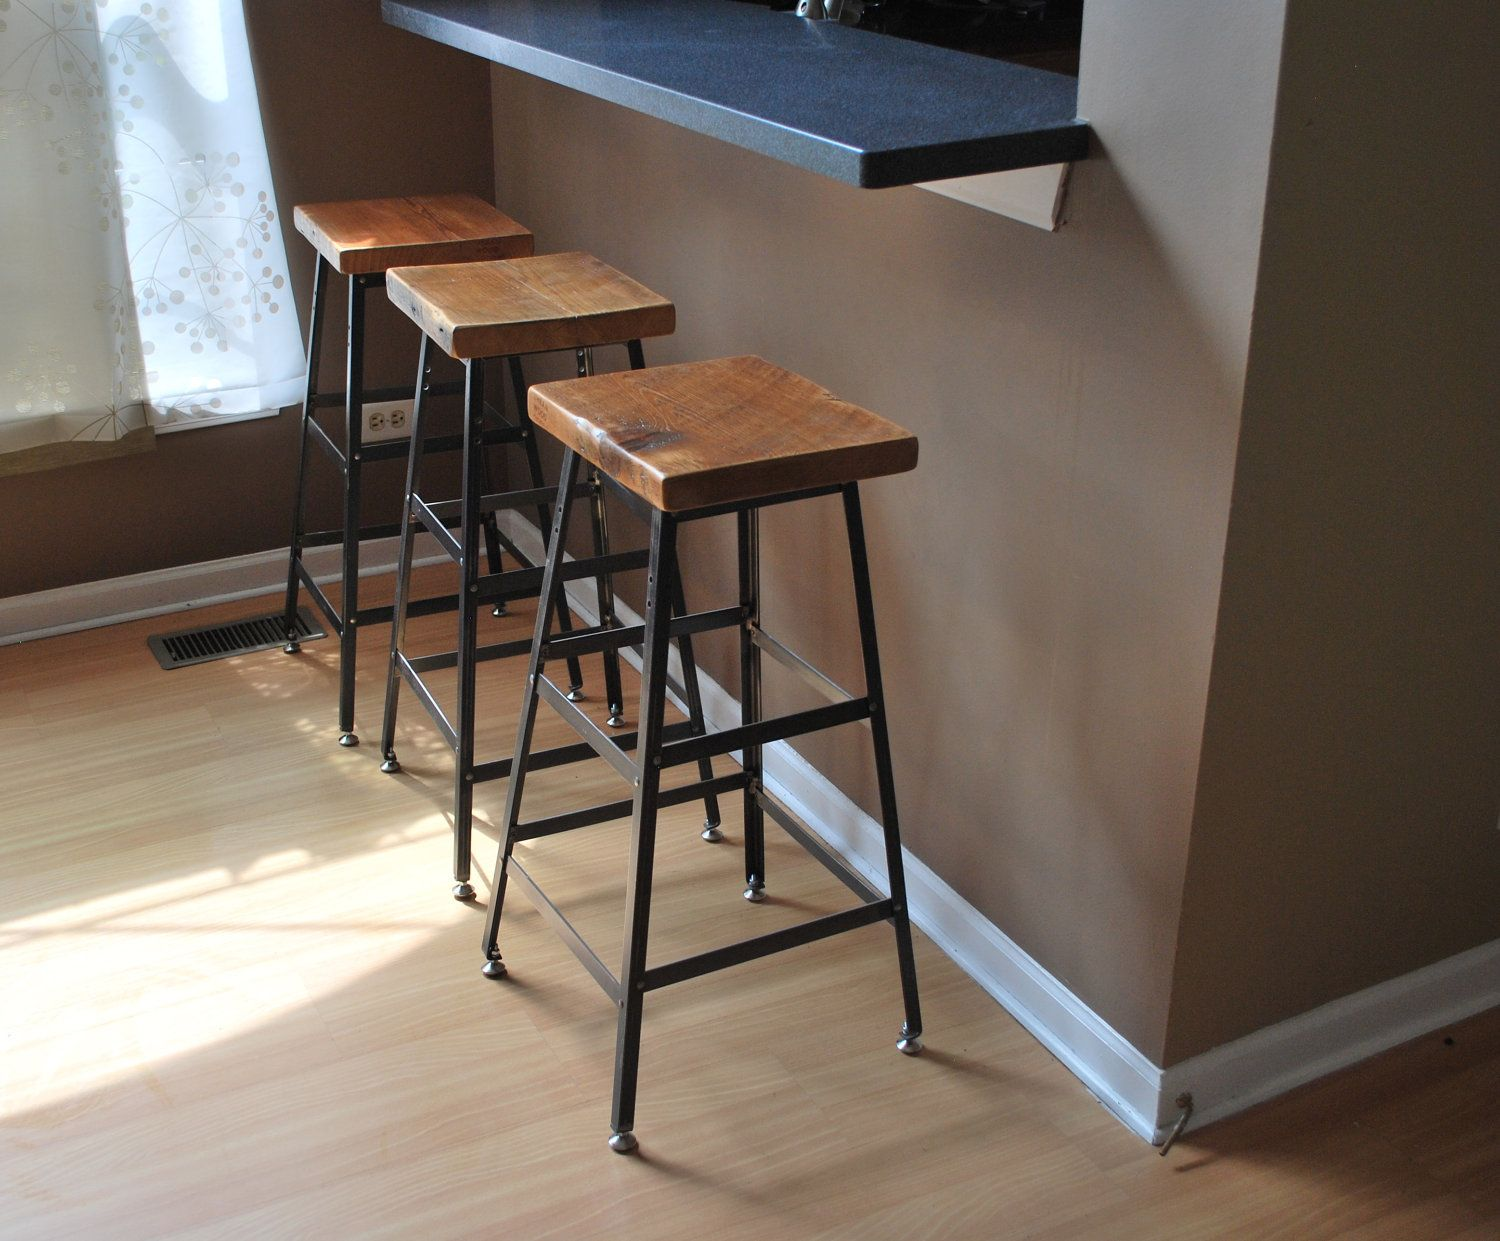 Industrial Counter Height Bar Stools Reclaimed Wood And Steel Industrial Shop Stool Made In